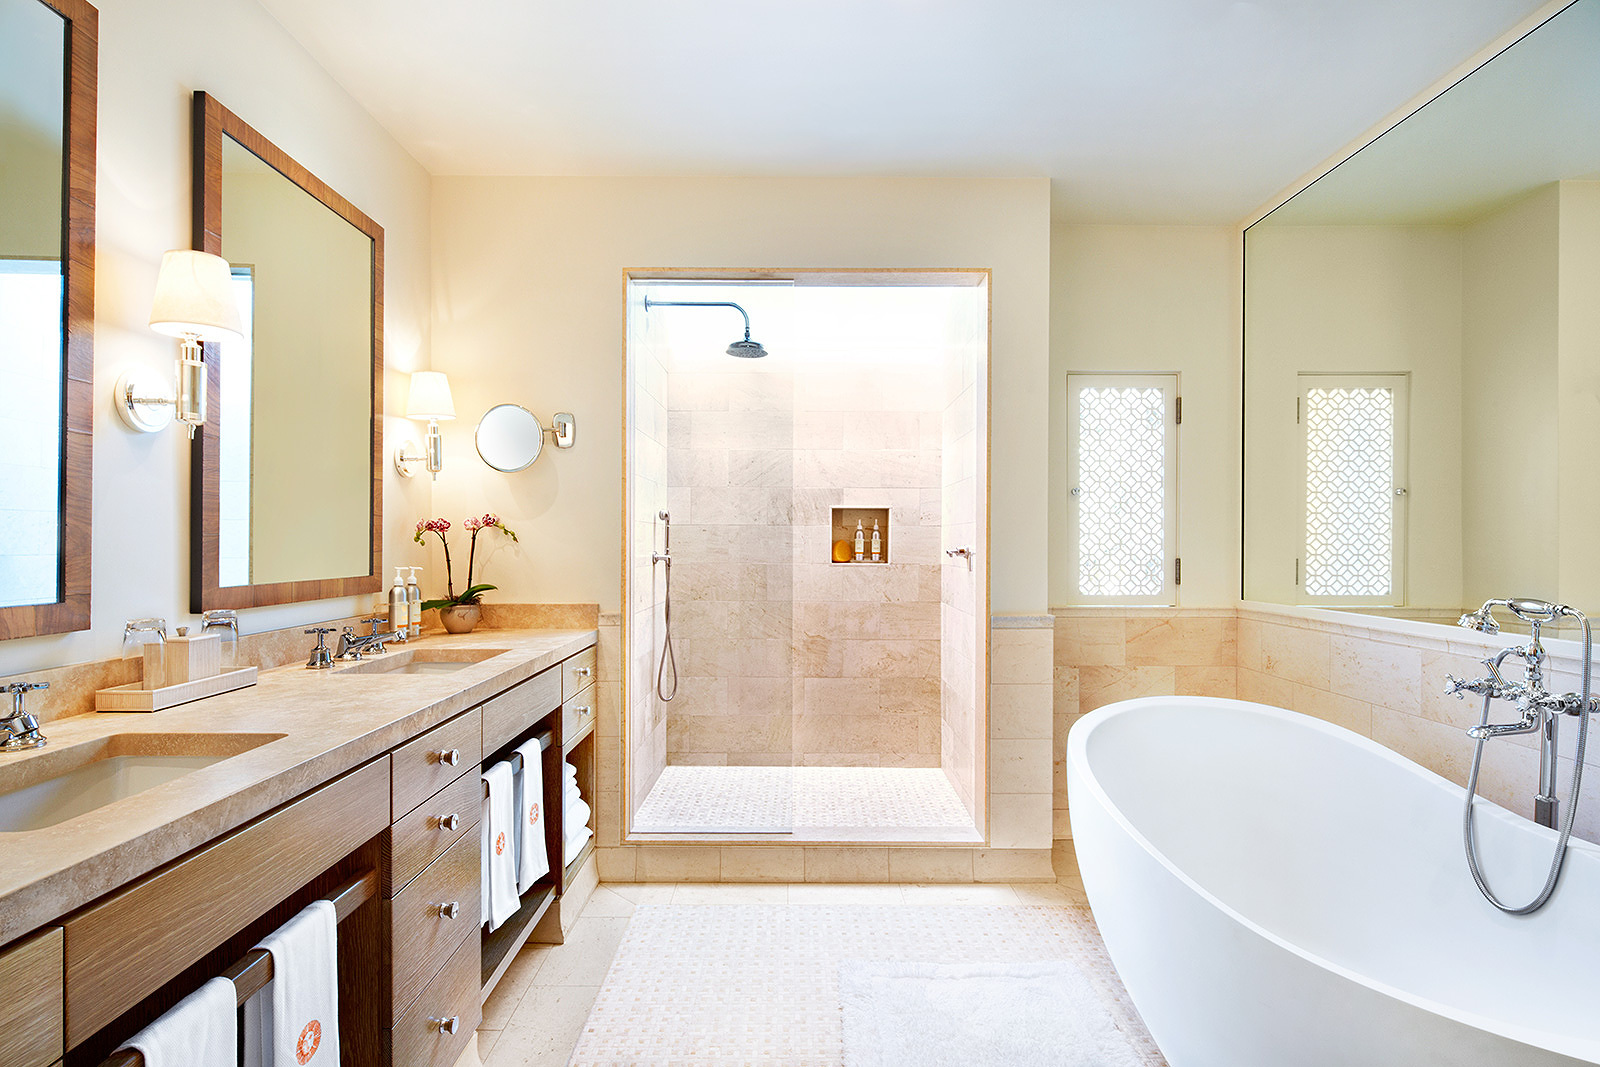 Bathrooms at Auberge Du Soleil  | Trinette+Chris Photographers